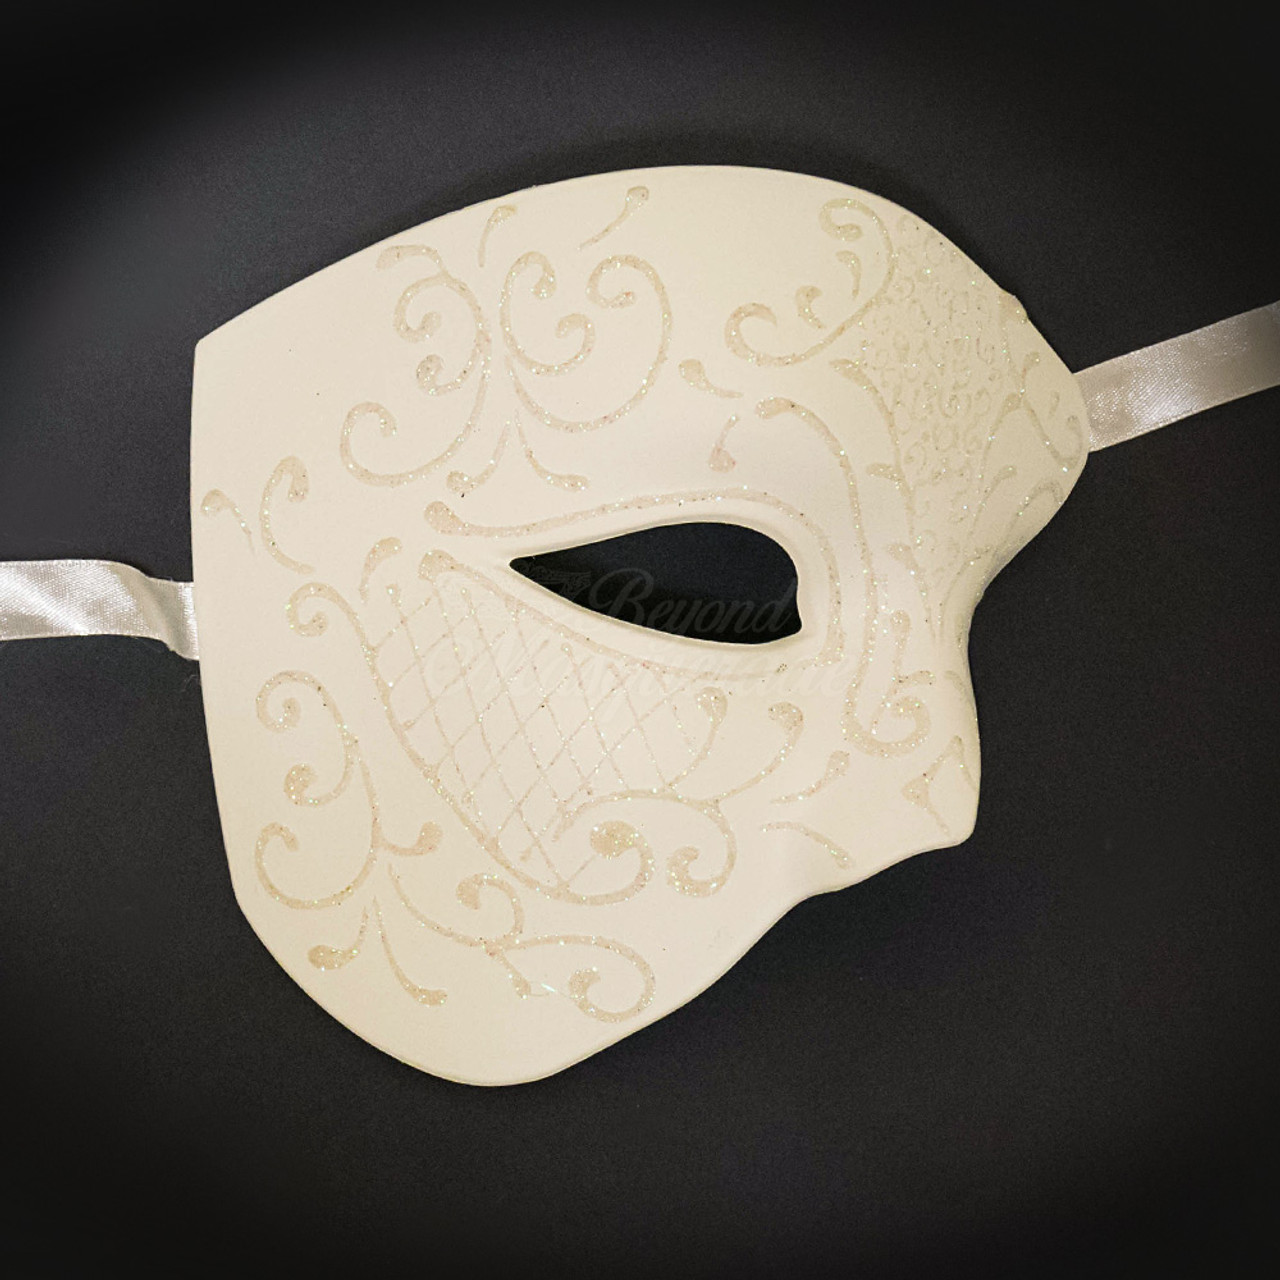 best sellers masquerade masks for prom party masks for men women